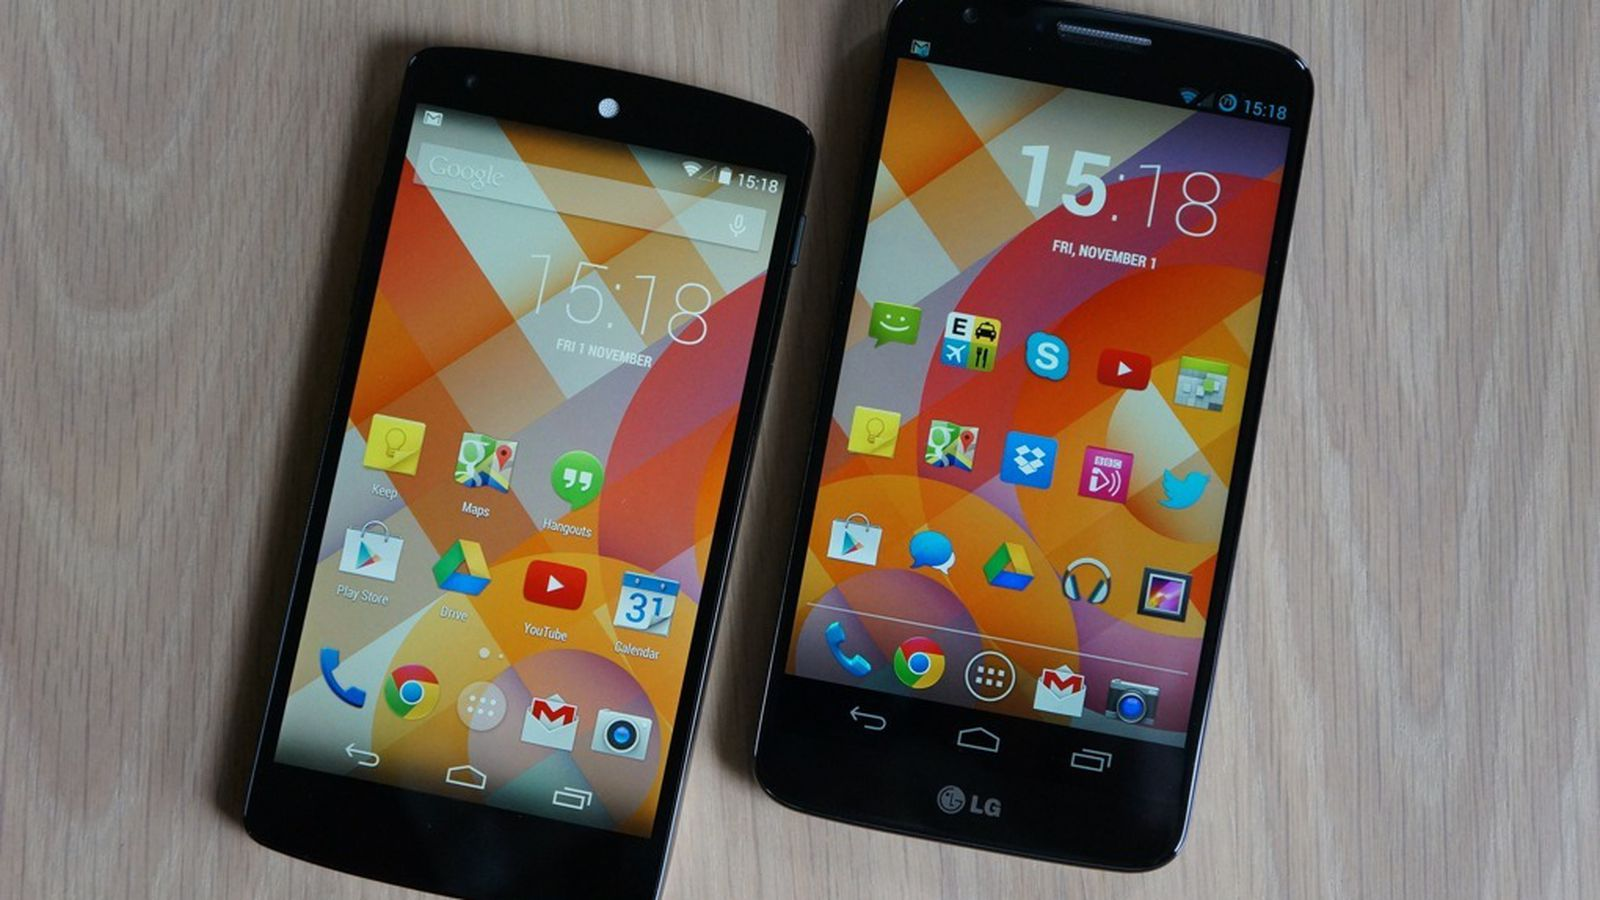 Nexus 5 vs. LG G2: see the difference